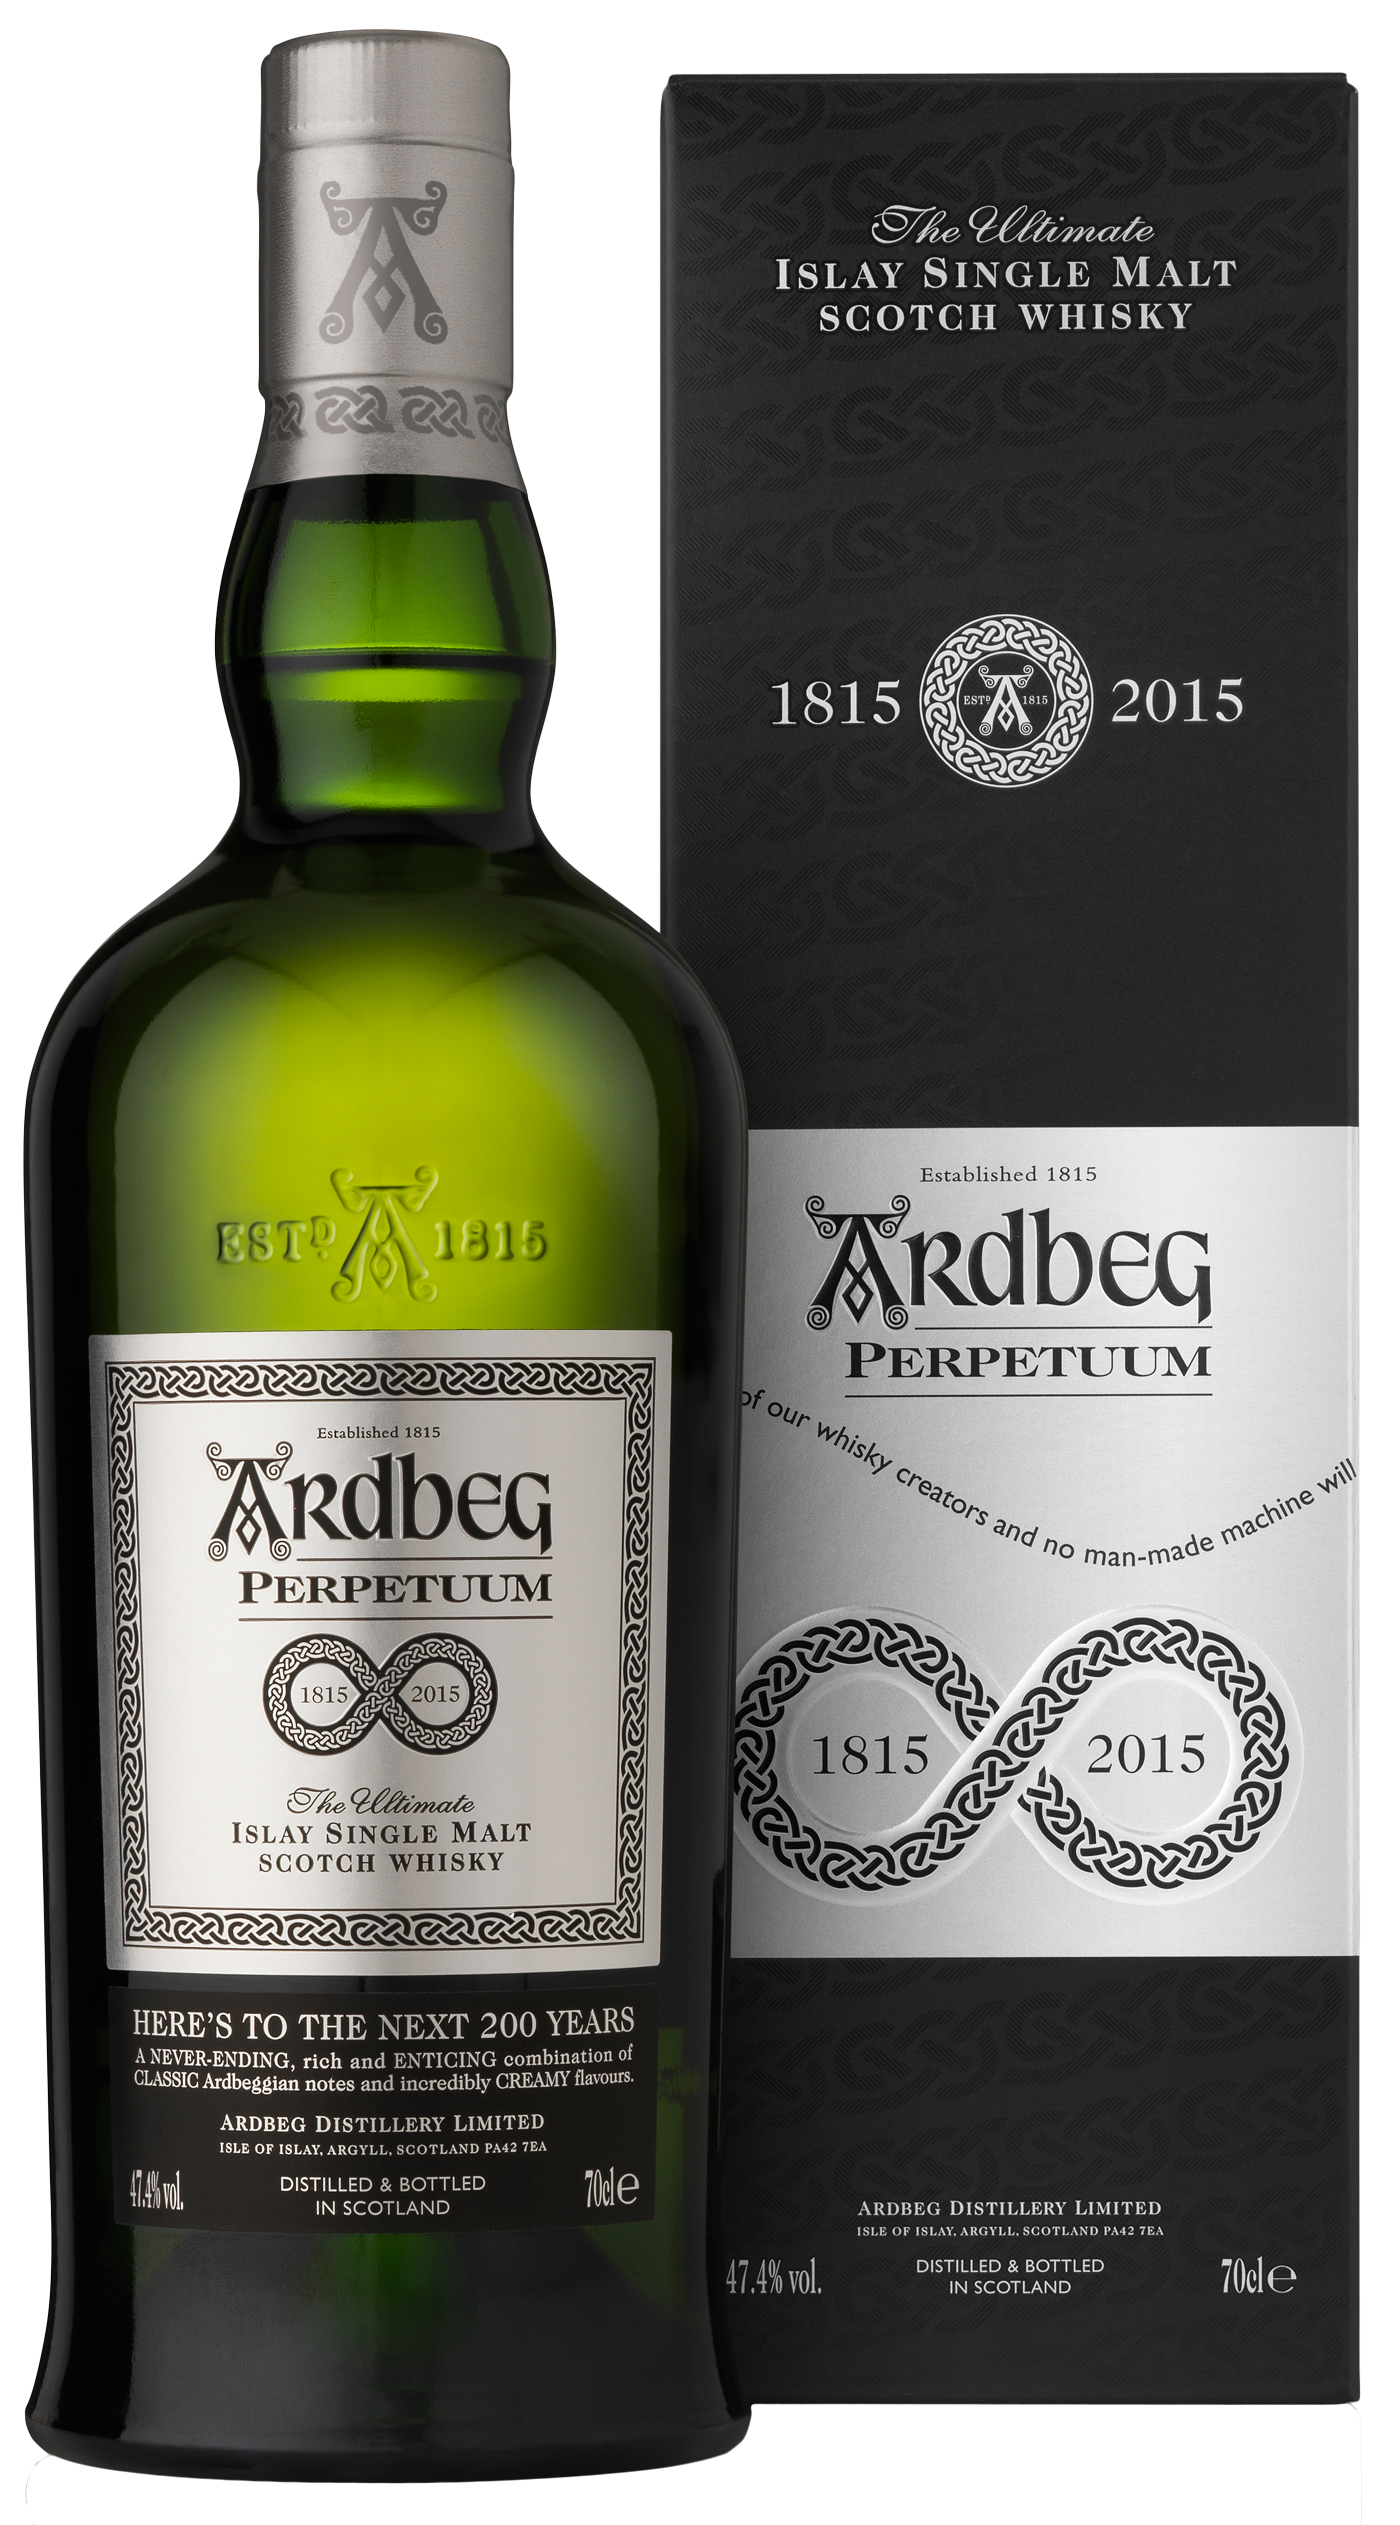 ardbeg perpetuum 200 jahre limited single malt whisky 47 4 aus schottland online g nstig kaufen. Black Bedroom Furniture Sets. Home Design Ideas